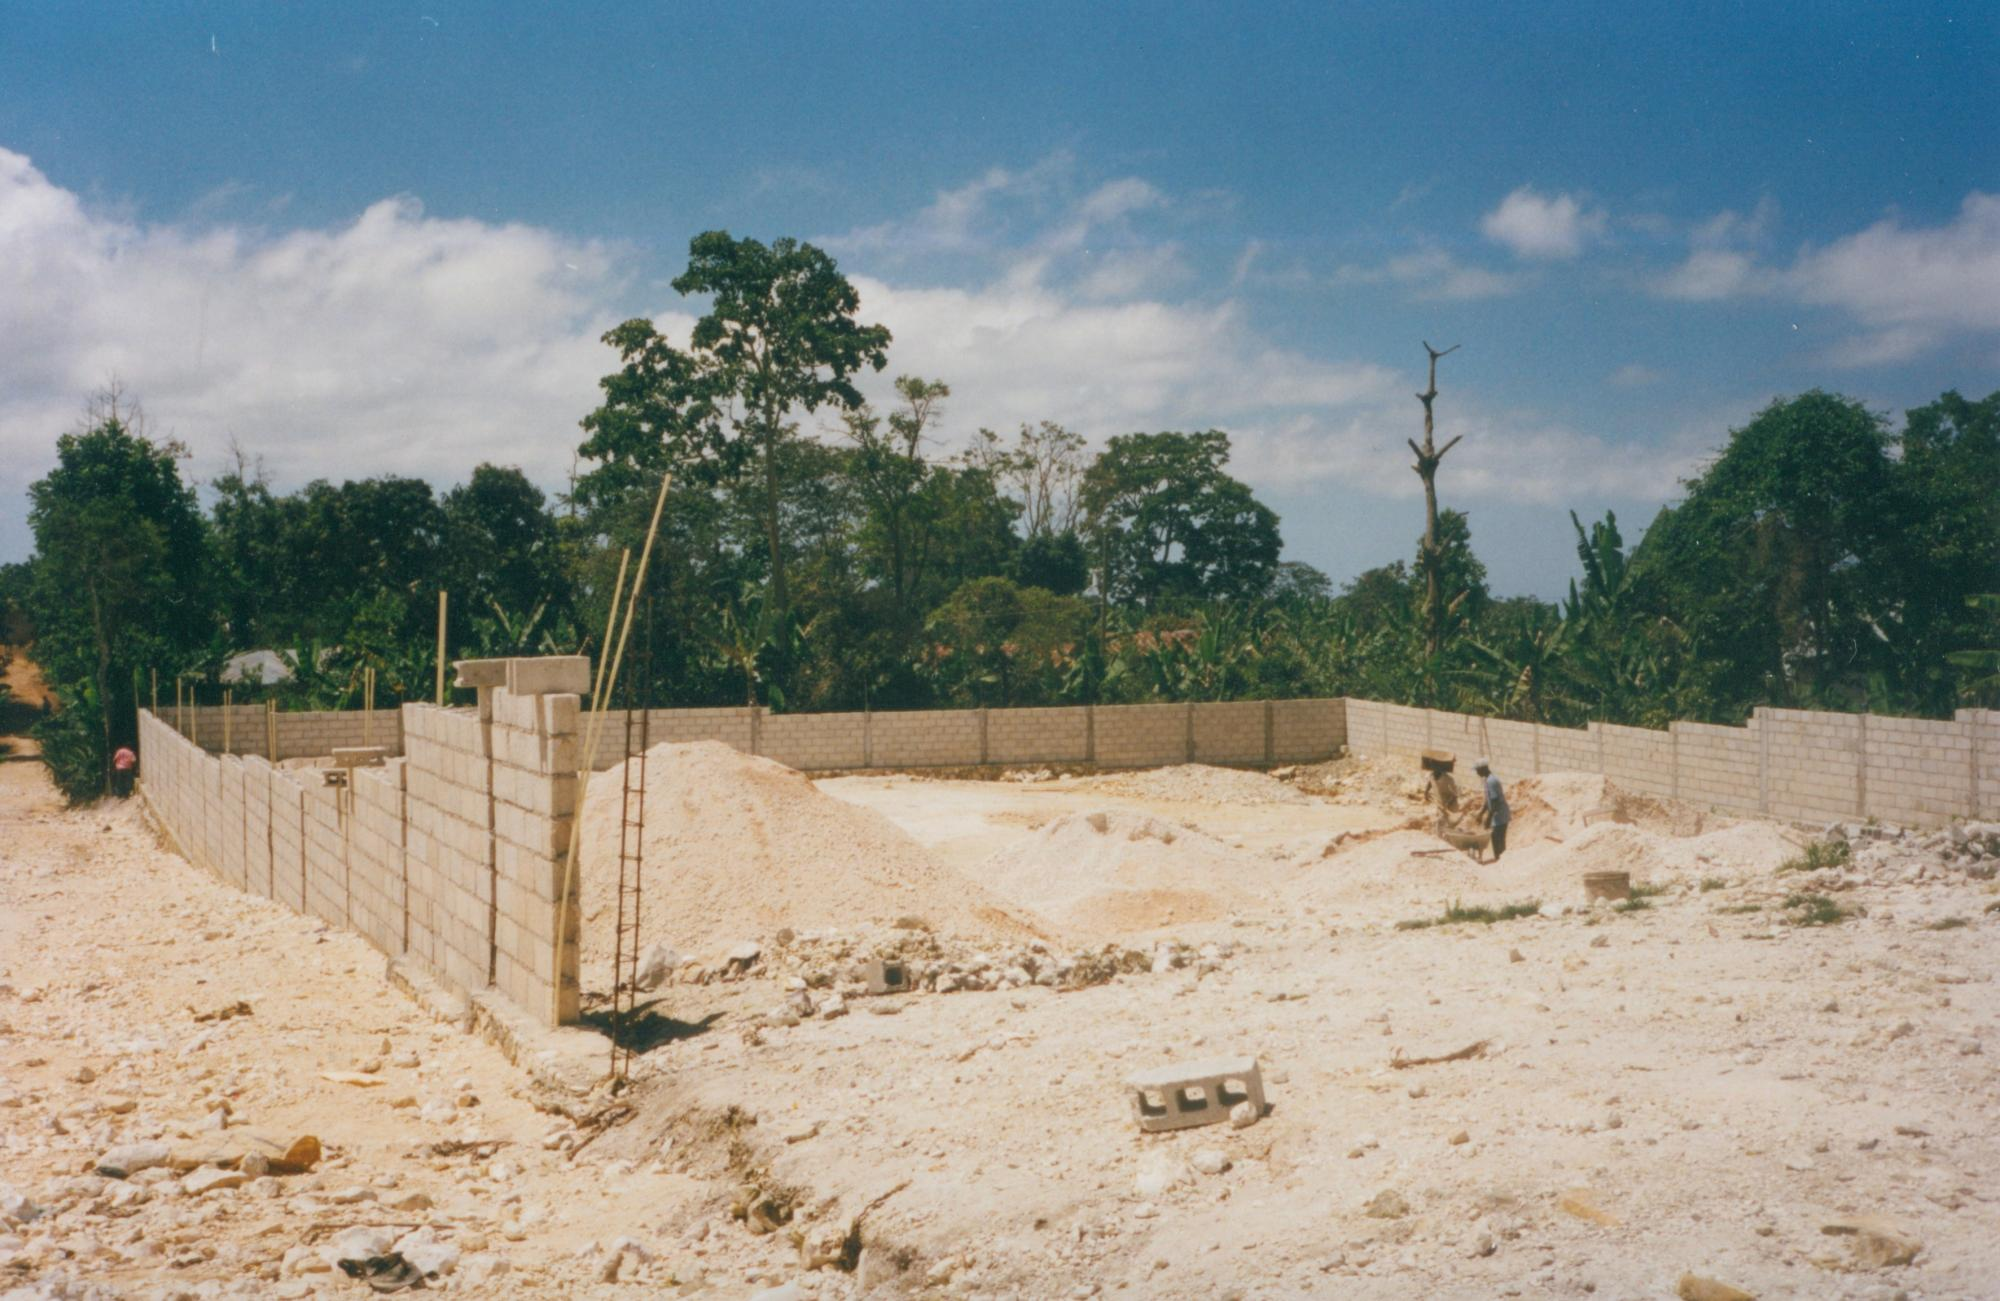 Clinic_Construction_circa_July_2001_image31.jpg